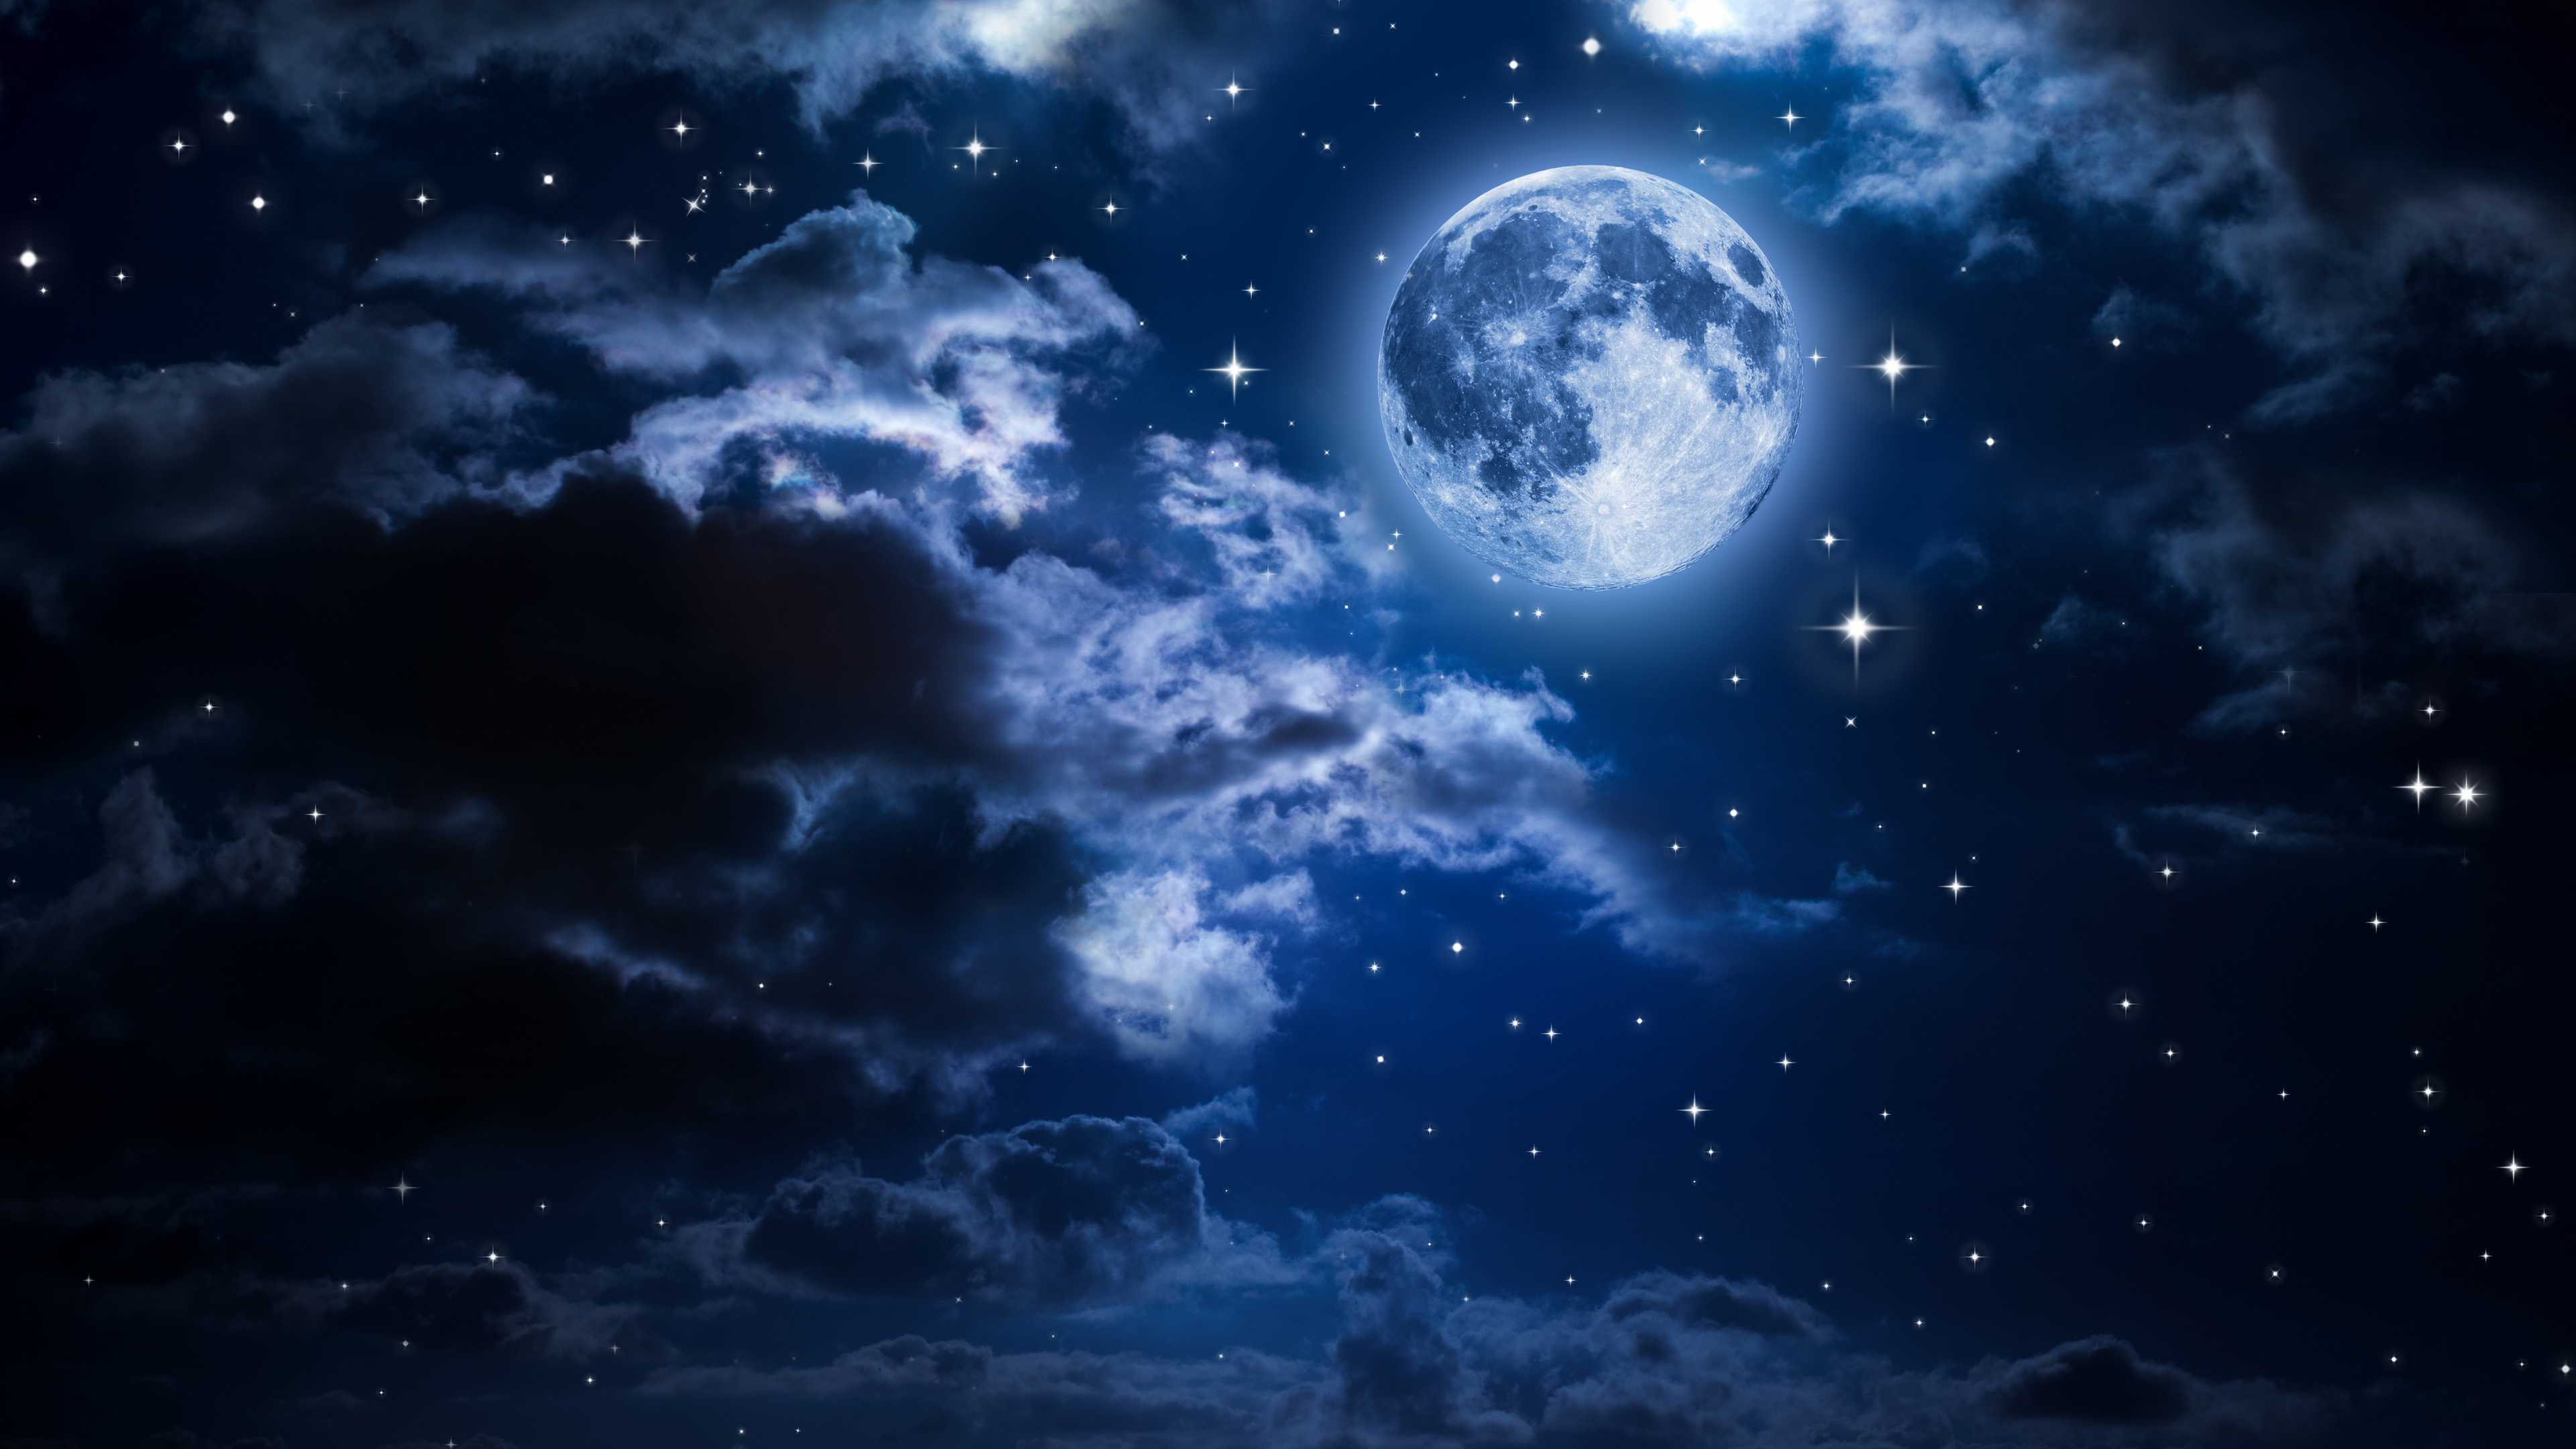 Wallpaper Moon in the clouds